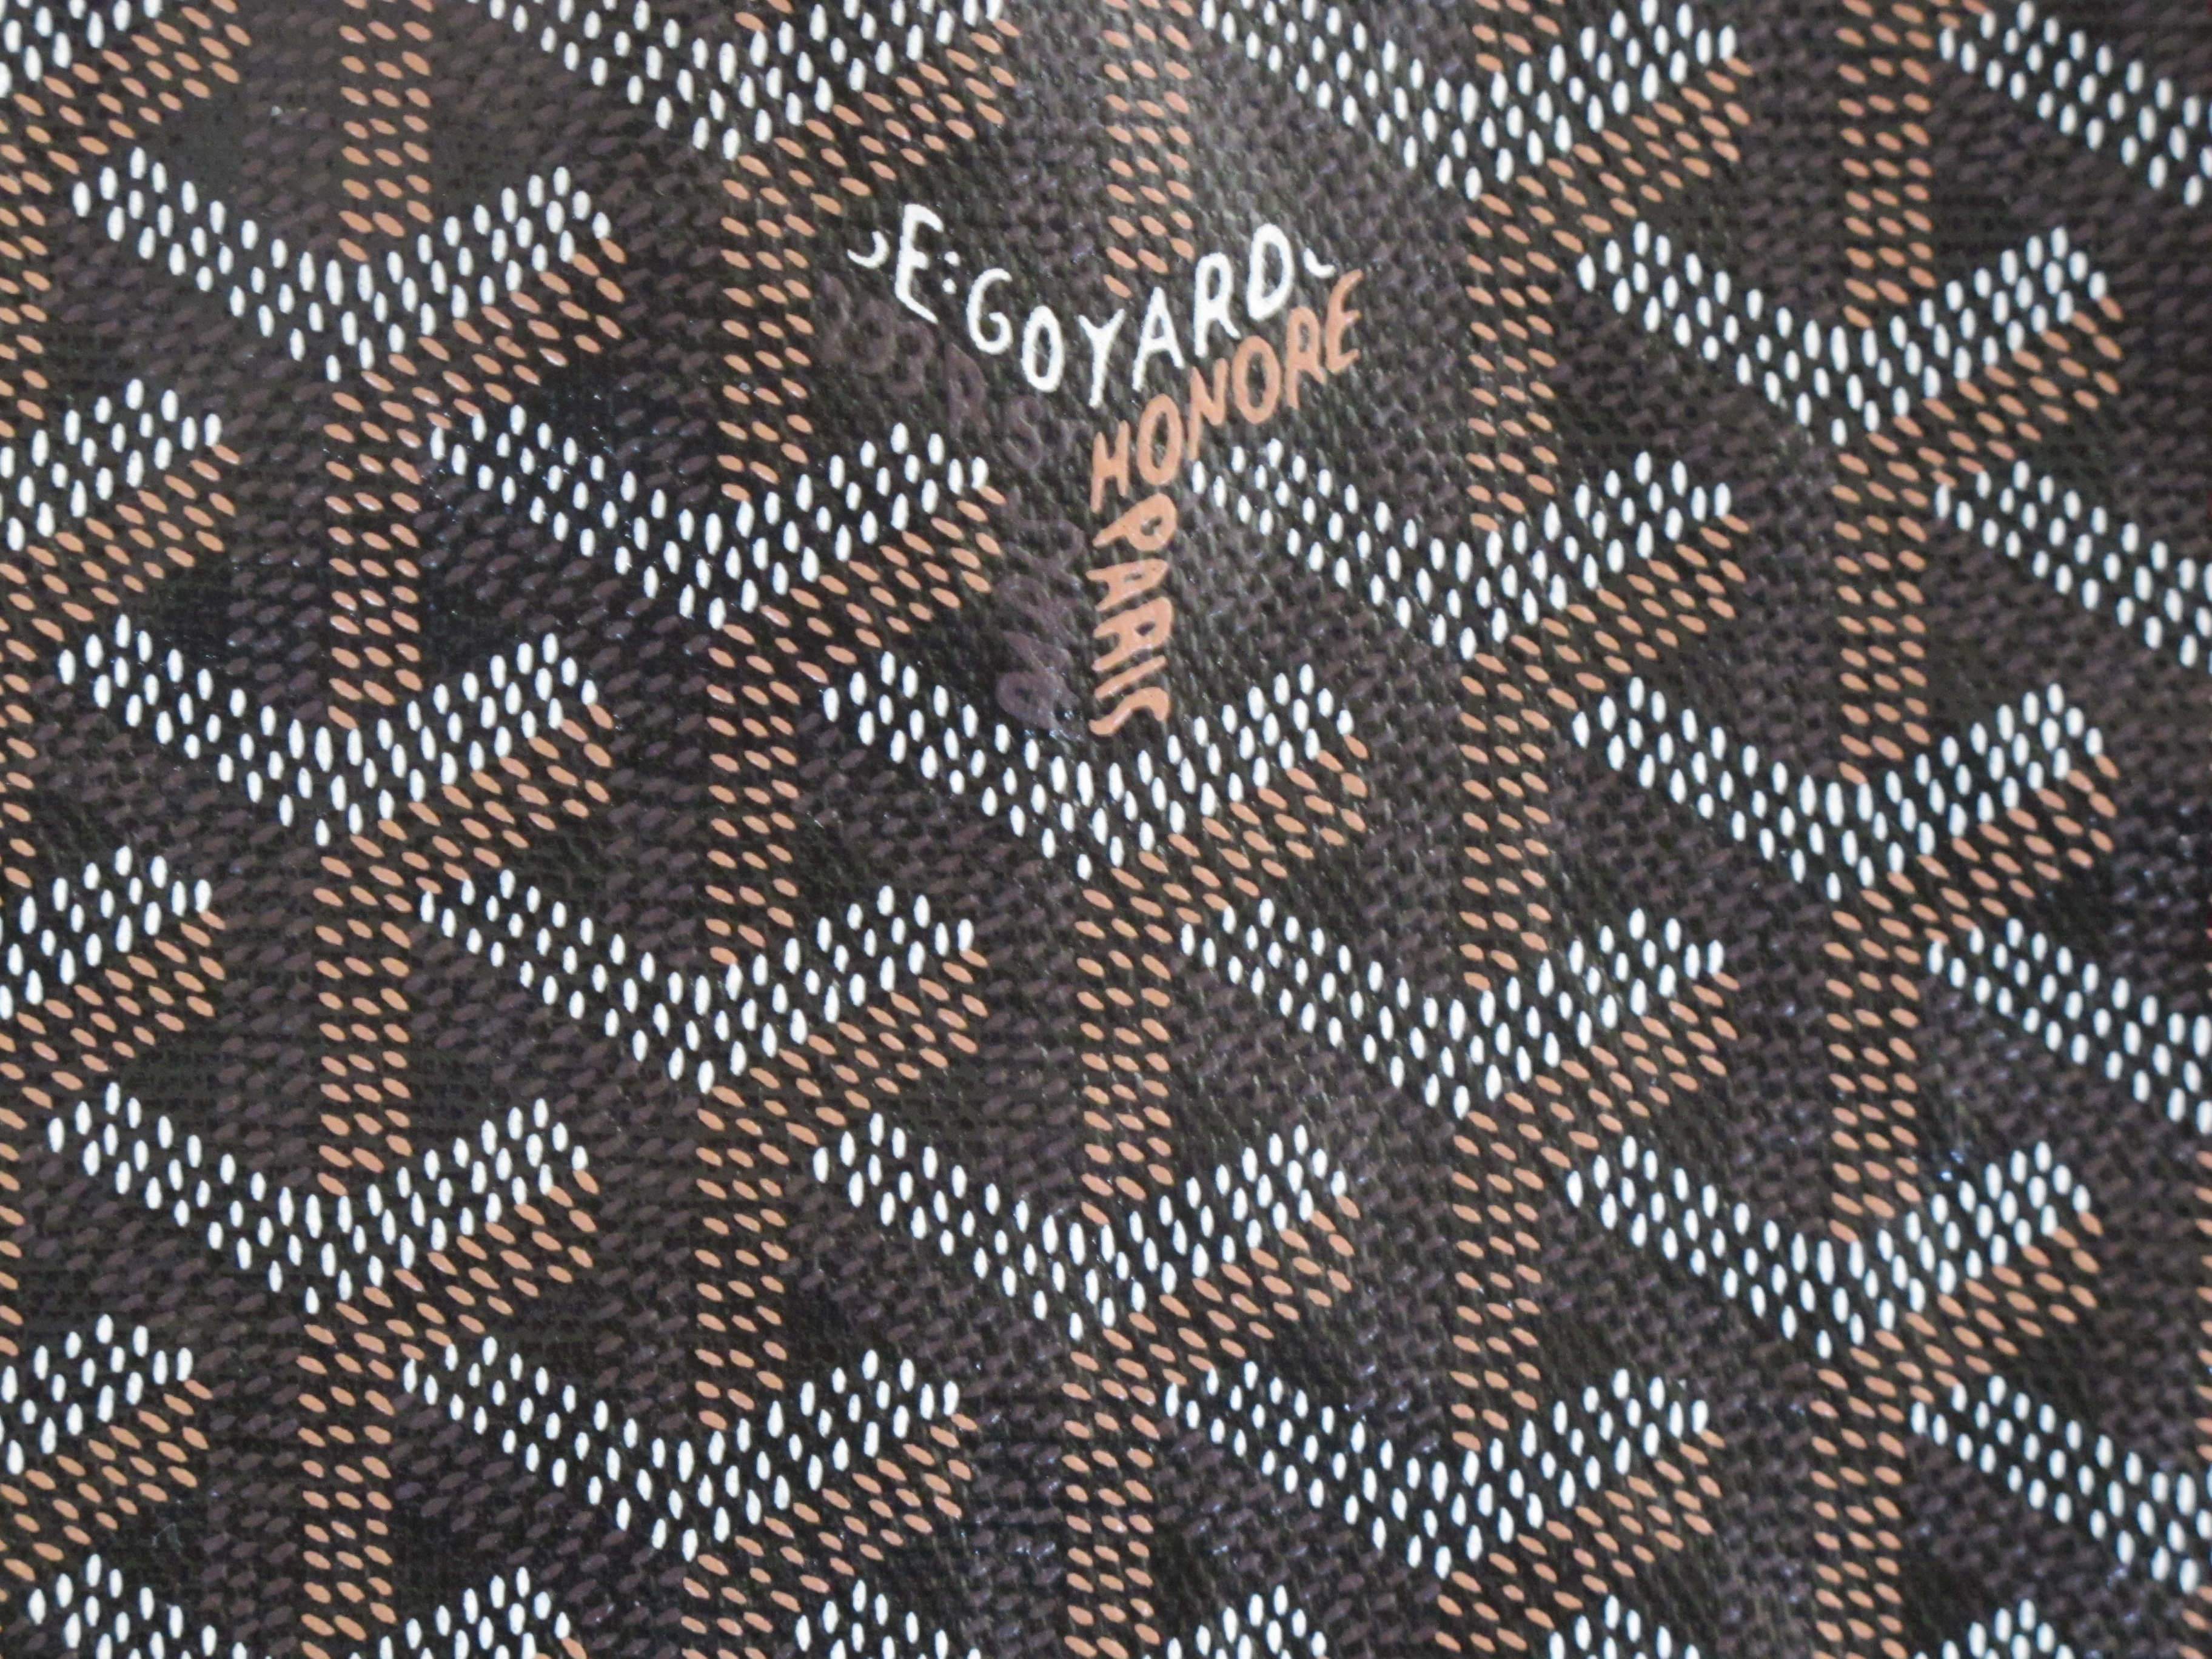 Goyard Wallpaper Iphone 6 La Femme Fran 199 Aise Itinerary Of The French Woman Places